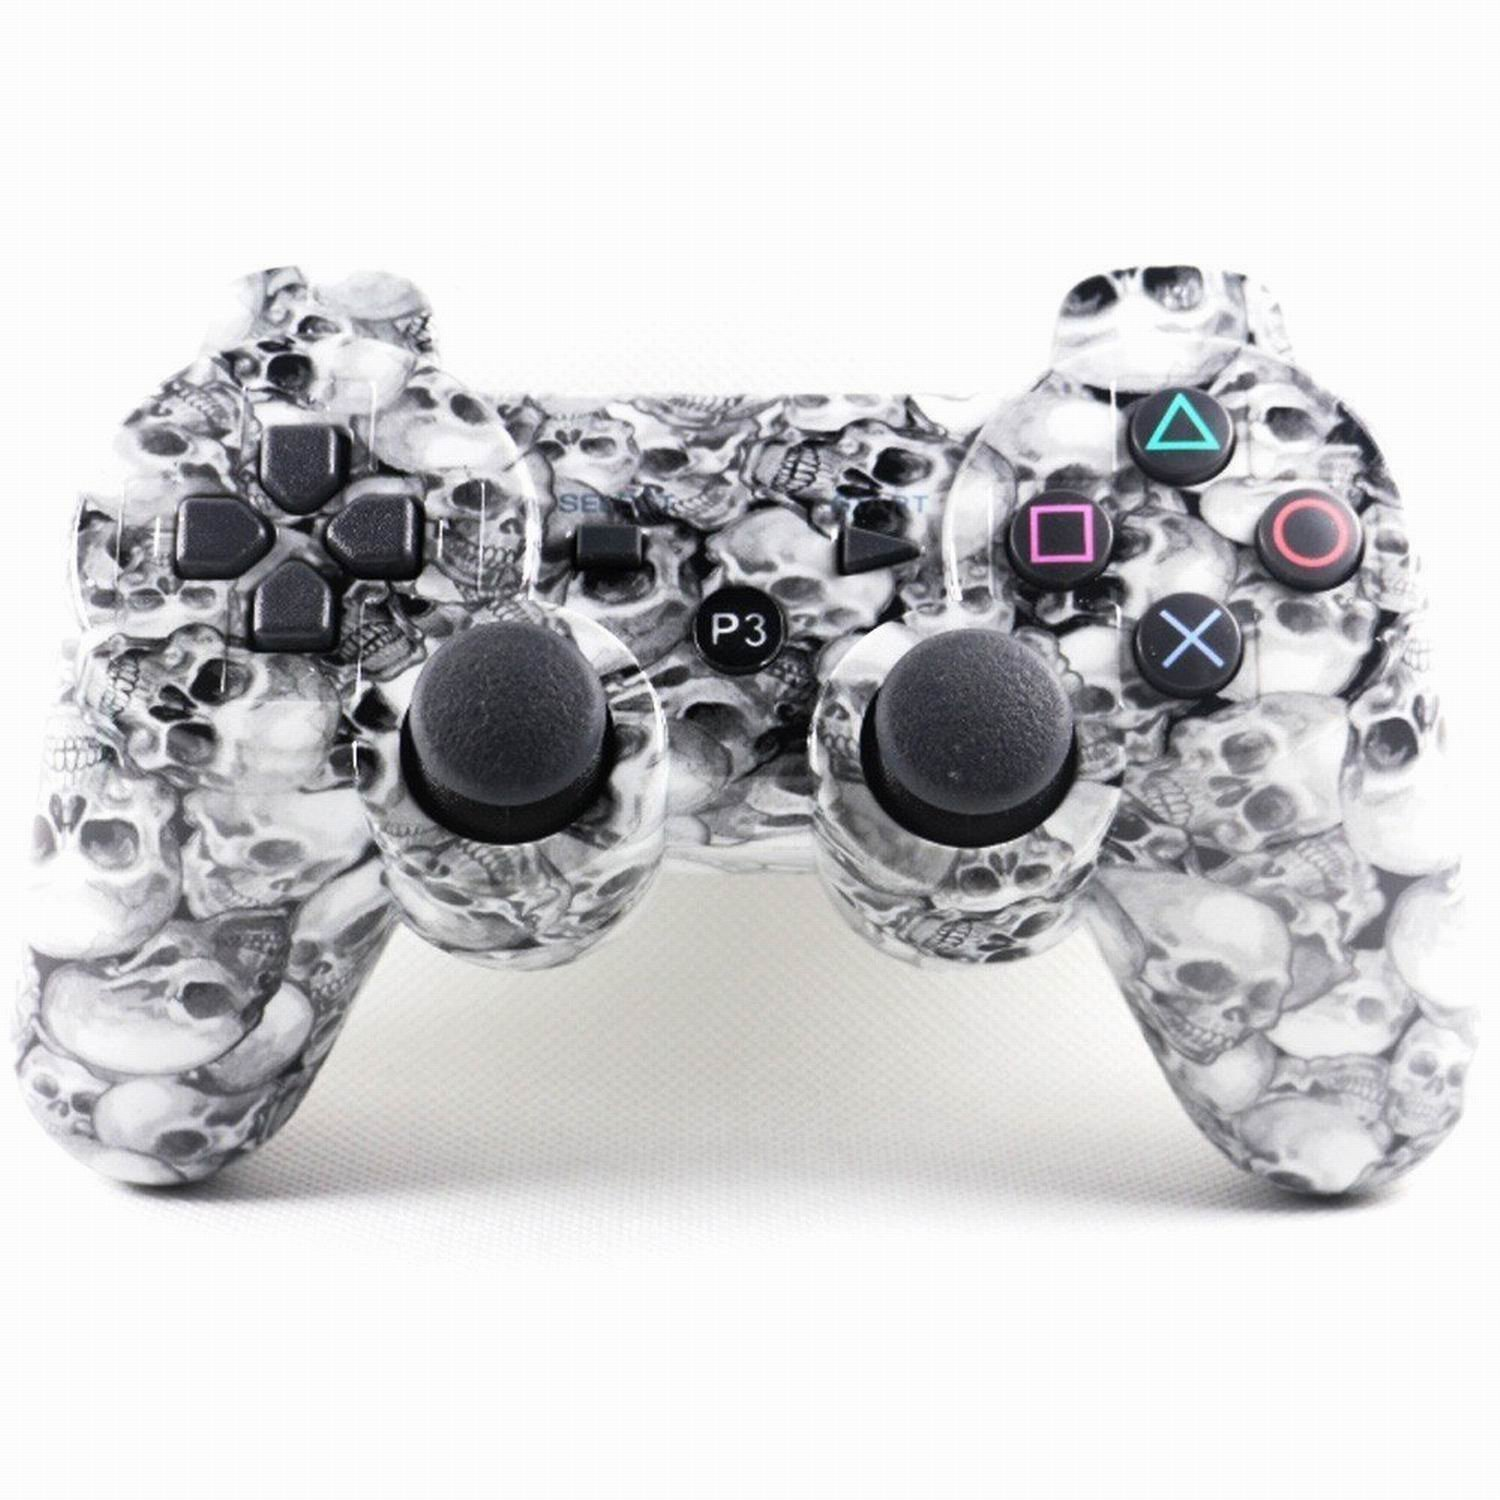 Dualshock 3 Wireless PS3 Controller for Sony PS3 - Skull Pattern